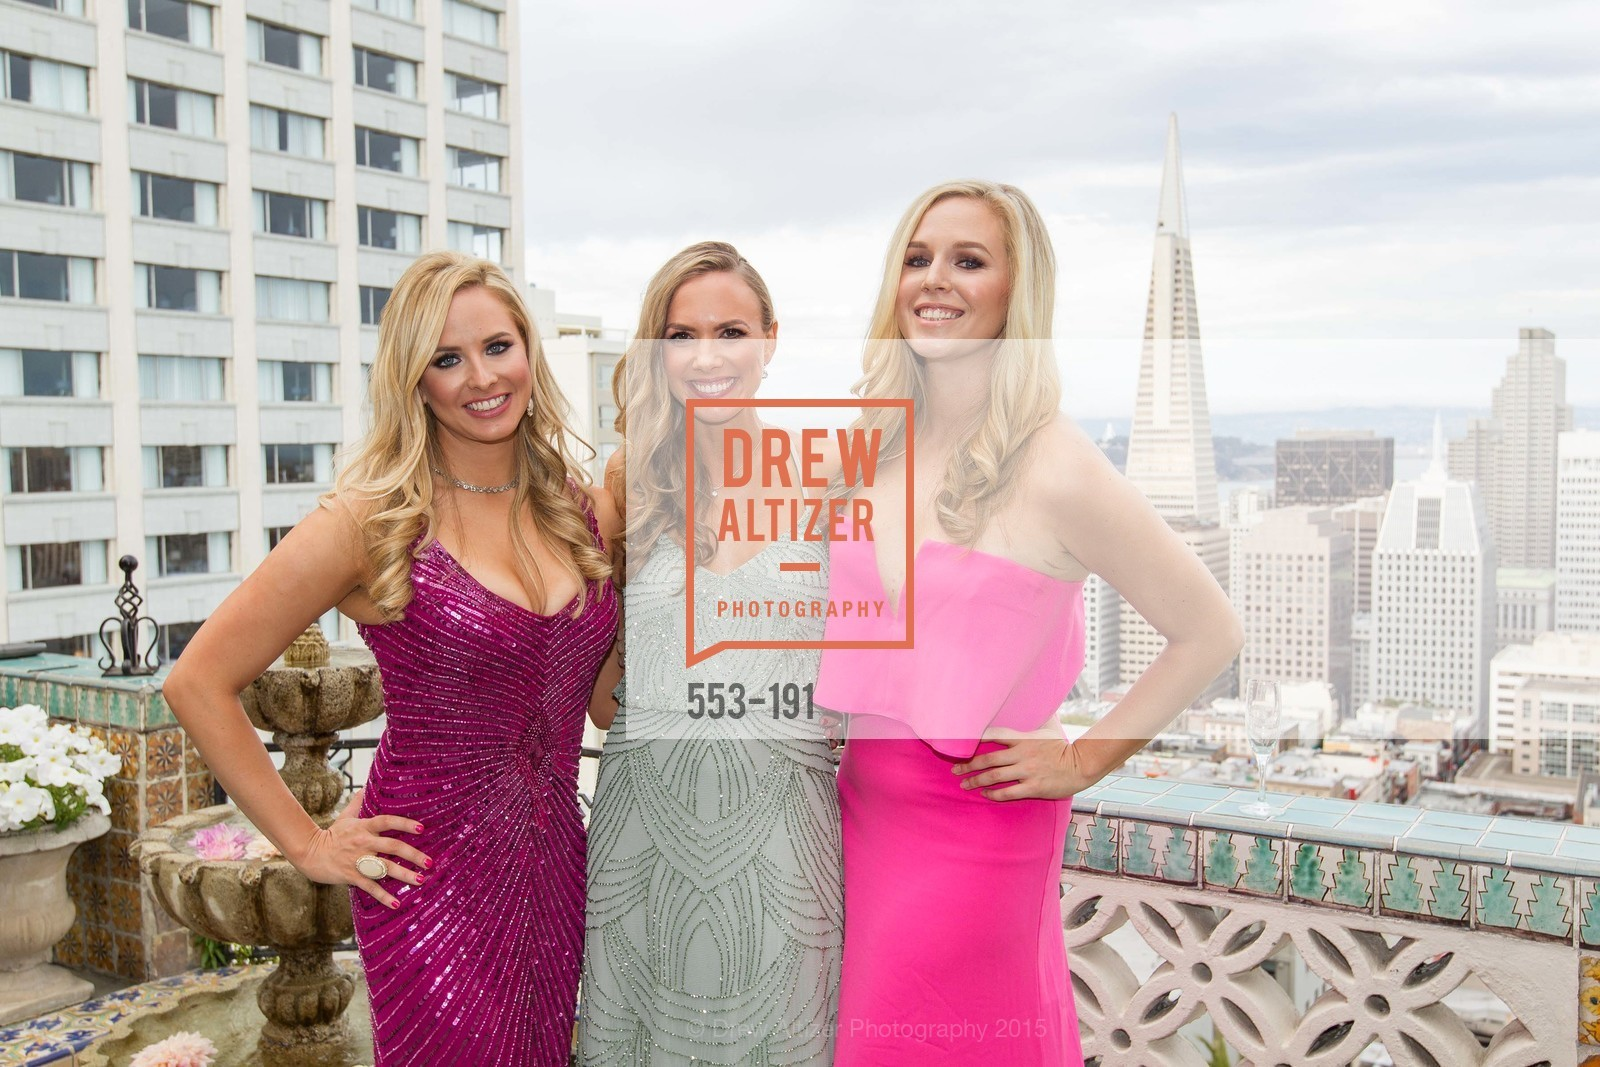 Elizabeth Sgarrella, Michelle Bertino, Cambria Steel, Spinsters of San Francisco Annual Ball 2015, Penthouse at the Fairmont San Francisco (950 Mason Street). 950 Mason Street, June 28th, 2015,Drew Altizer, Drew Altizer Photography, full-service agency, private events, San Francisco photographer, photographer california